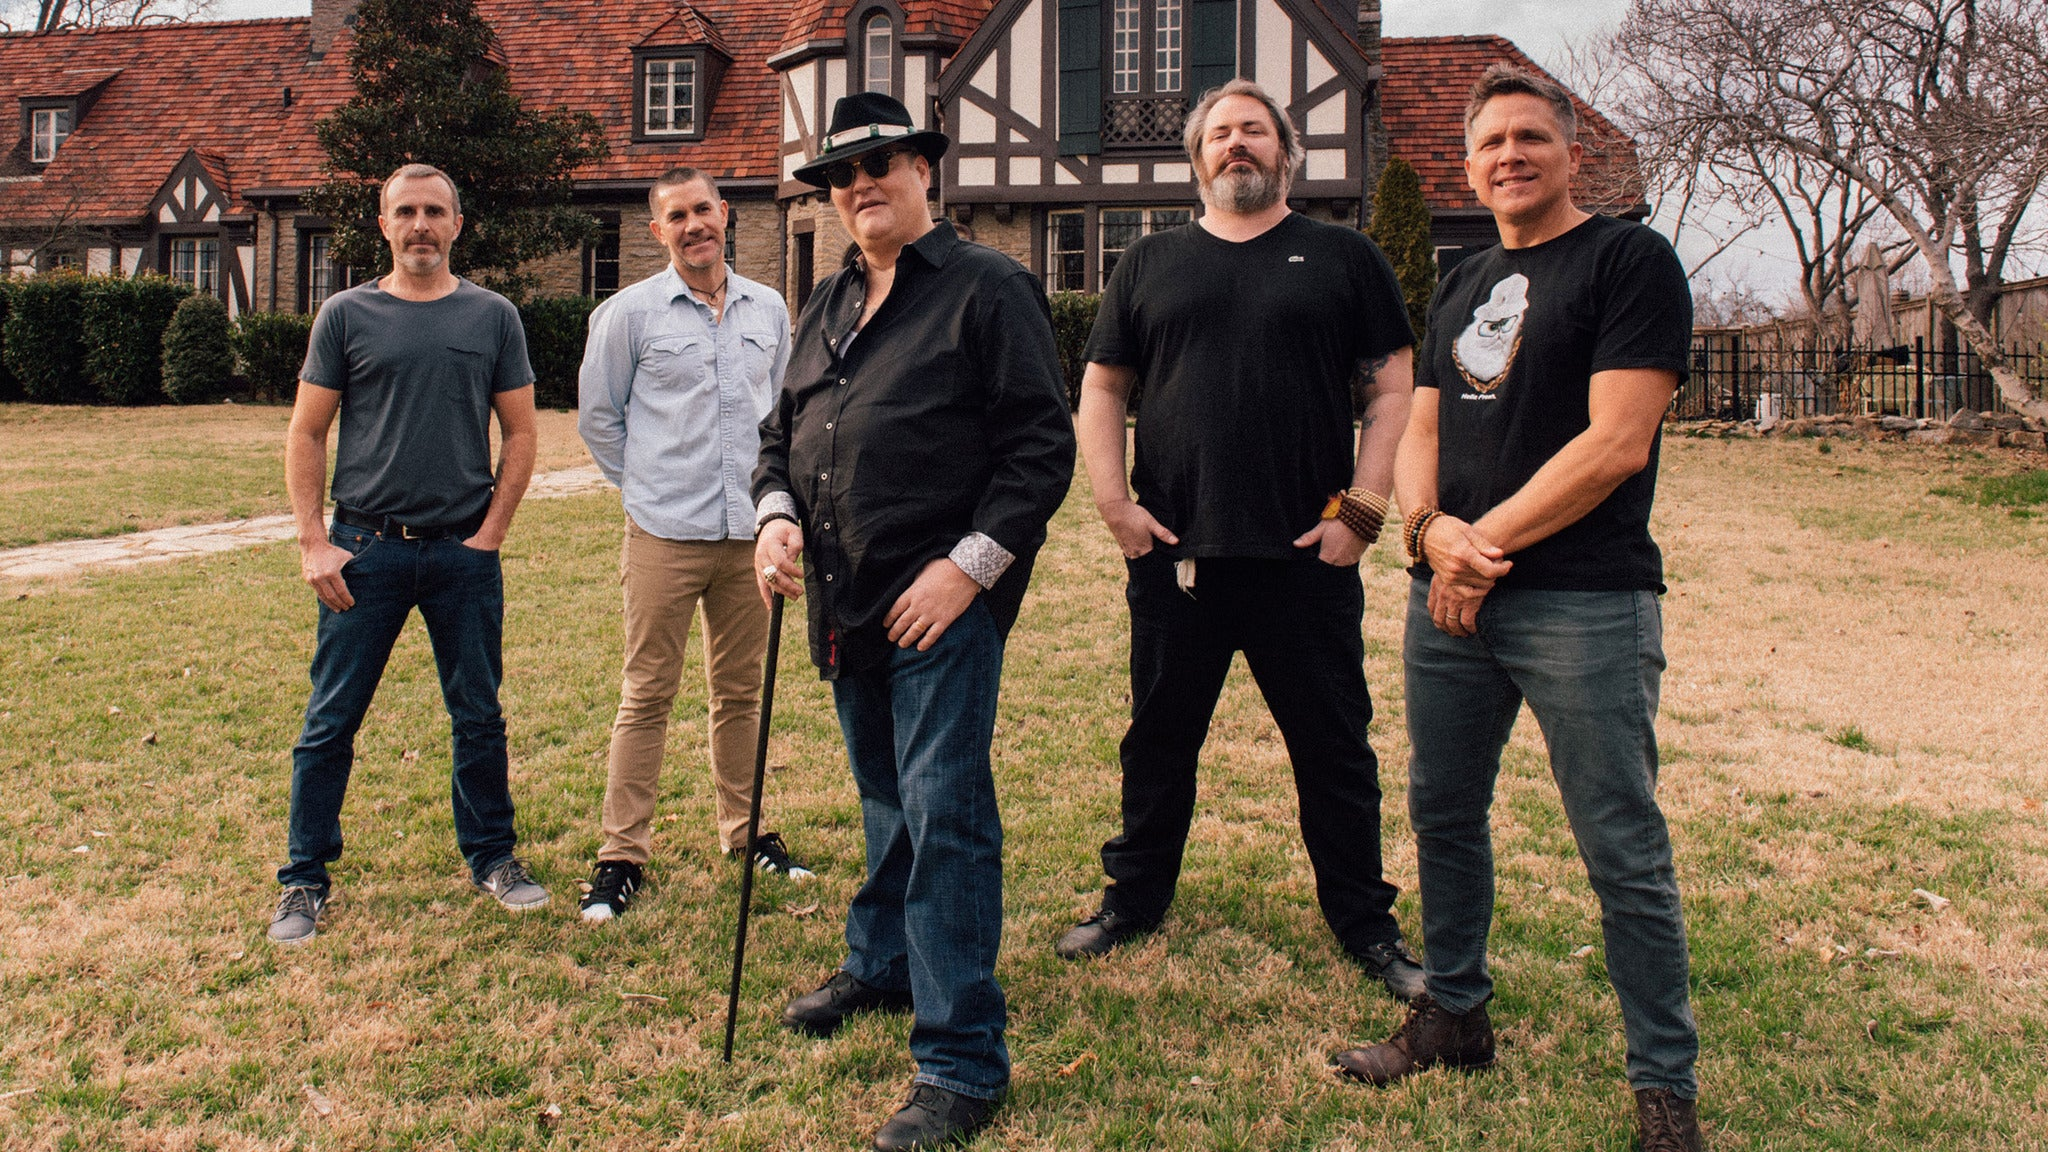 Blues Traveler - Four Live Tour at Pantages Theatre